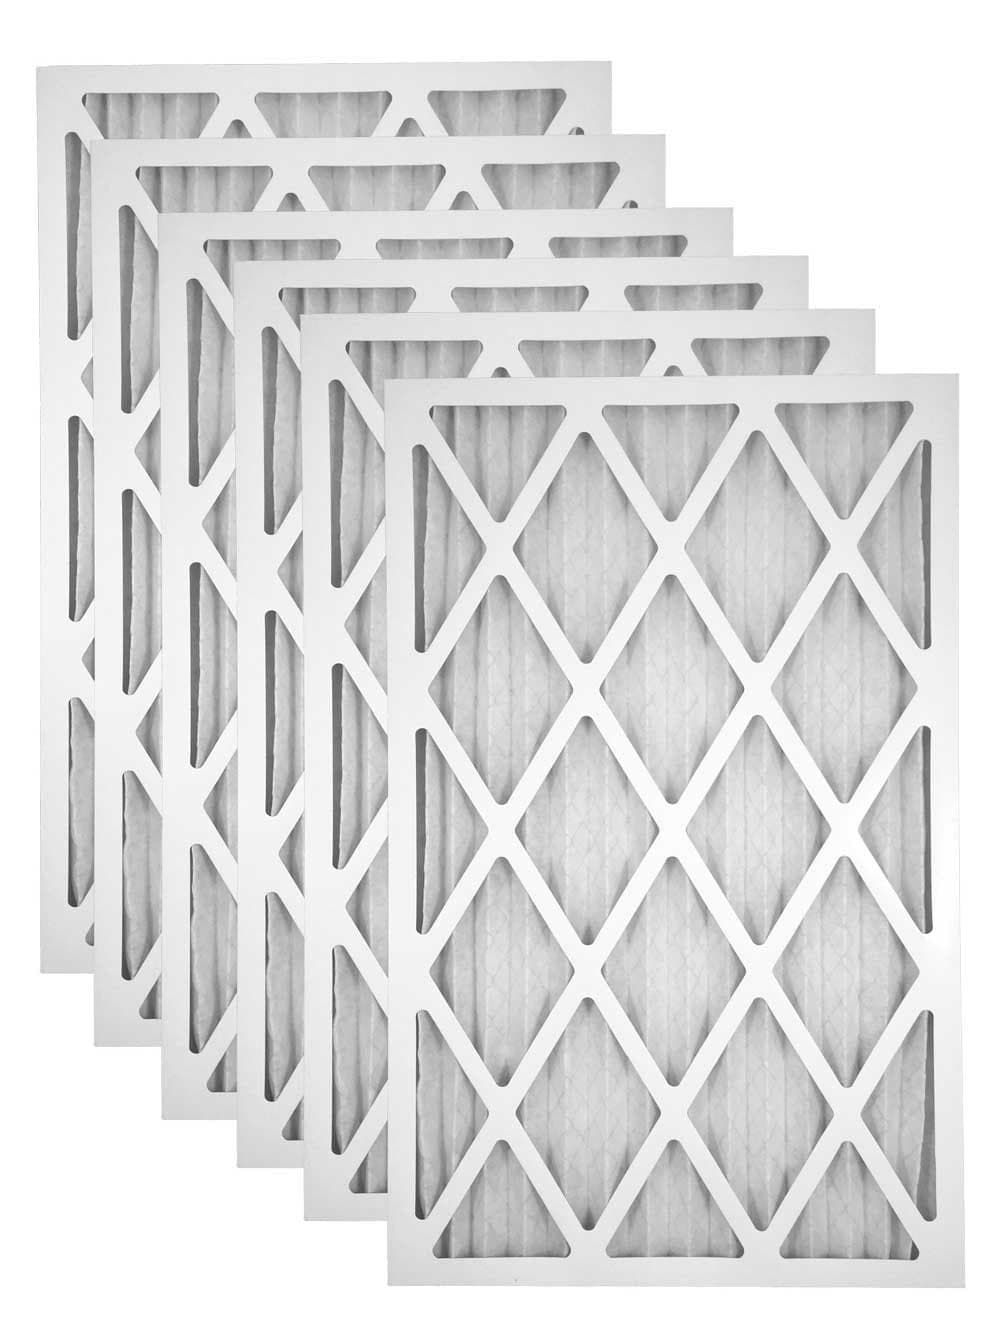 16x25x1 Merv 11 Pleated AC Furnace Filter - Case of 6